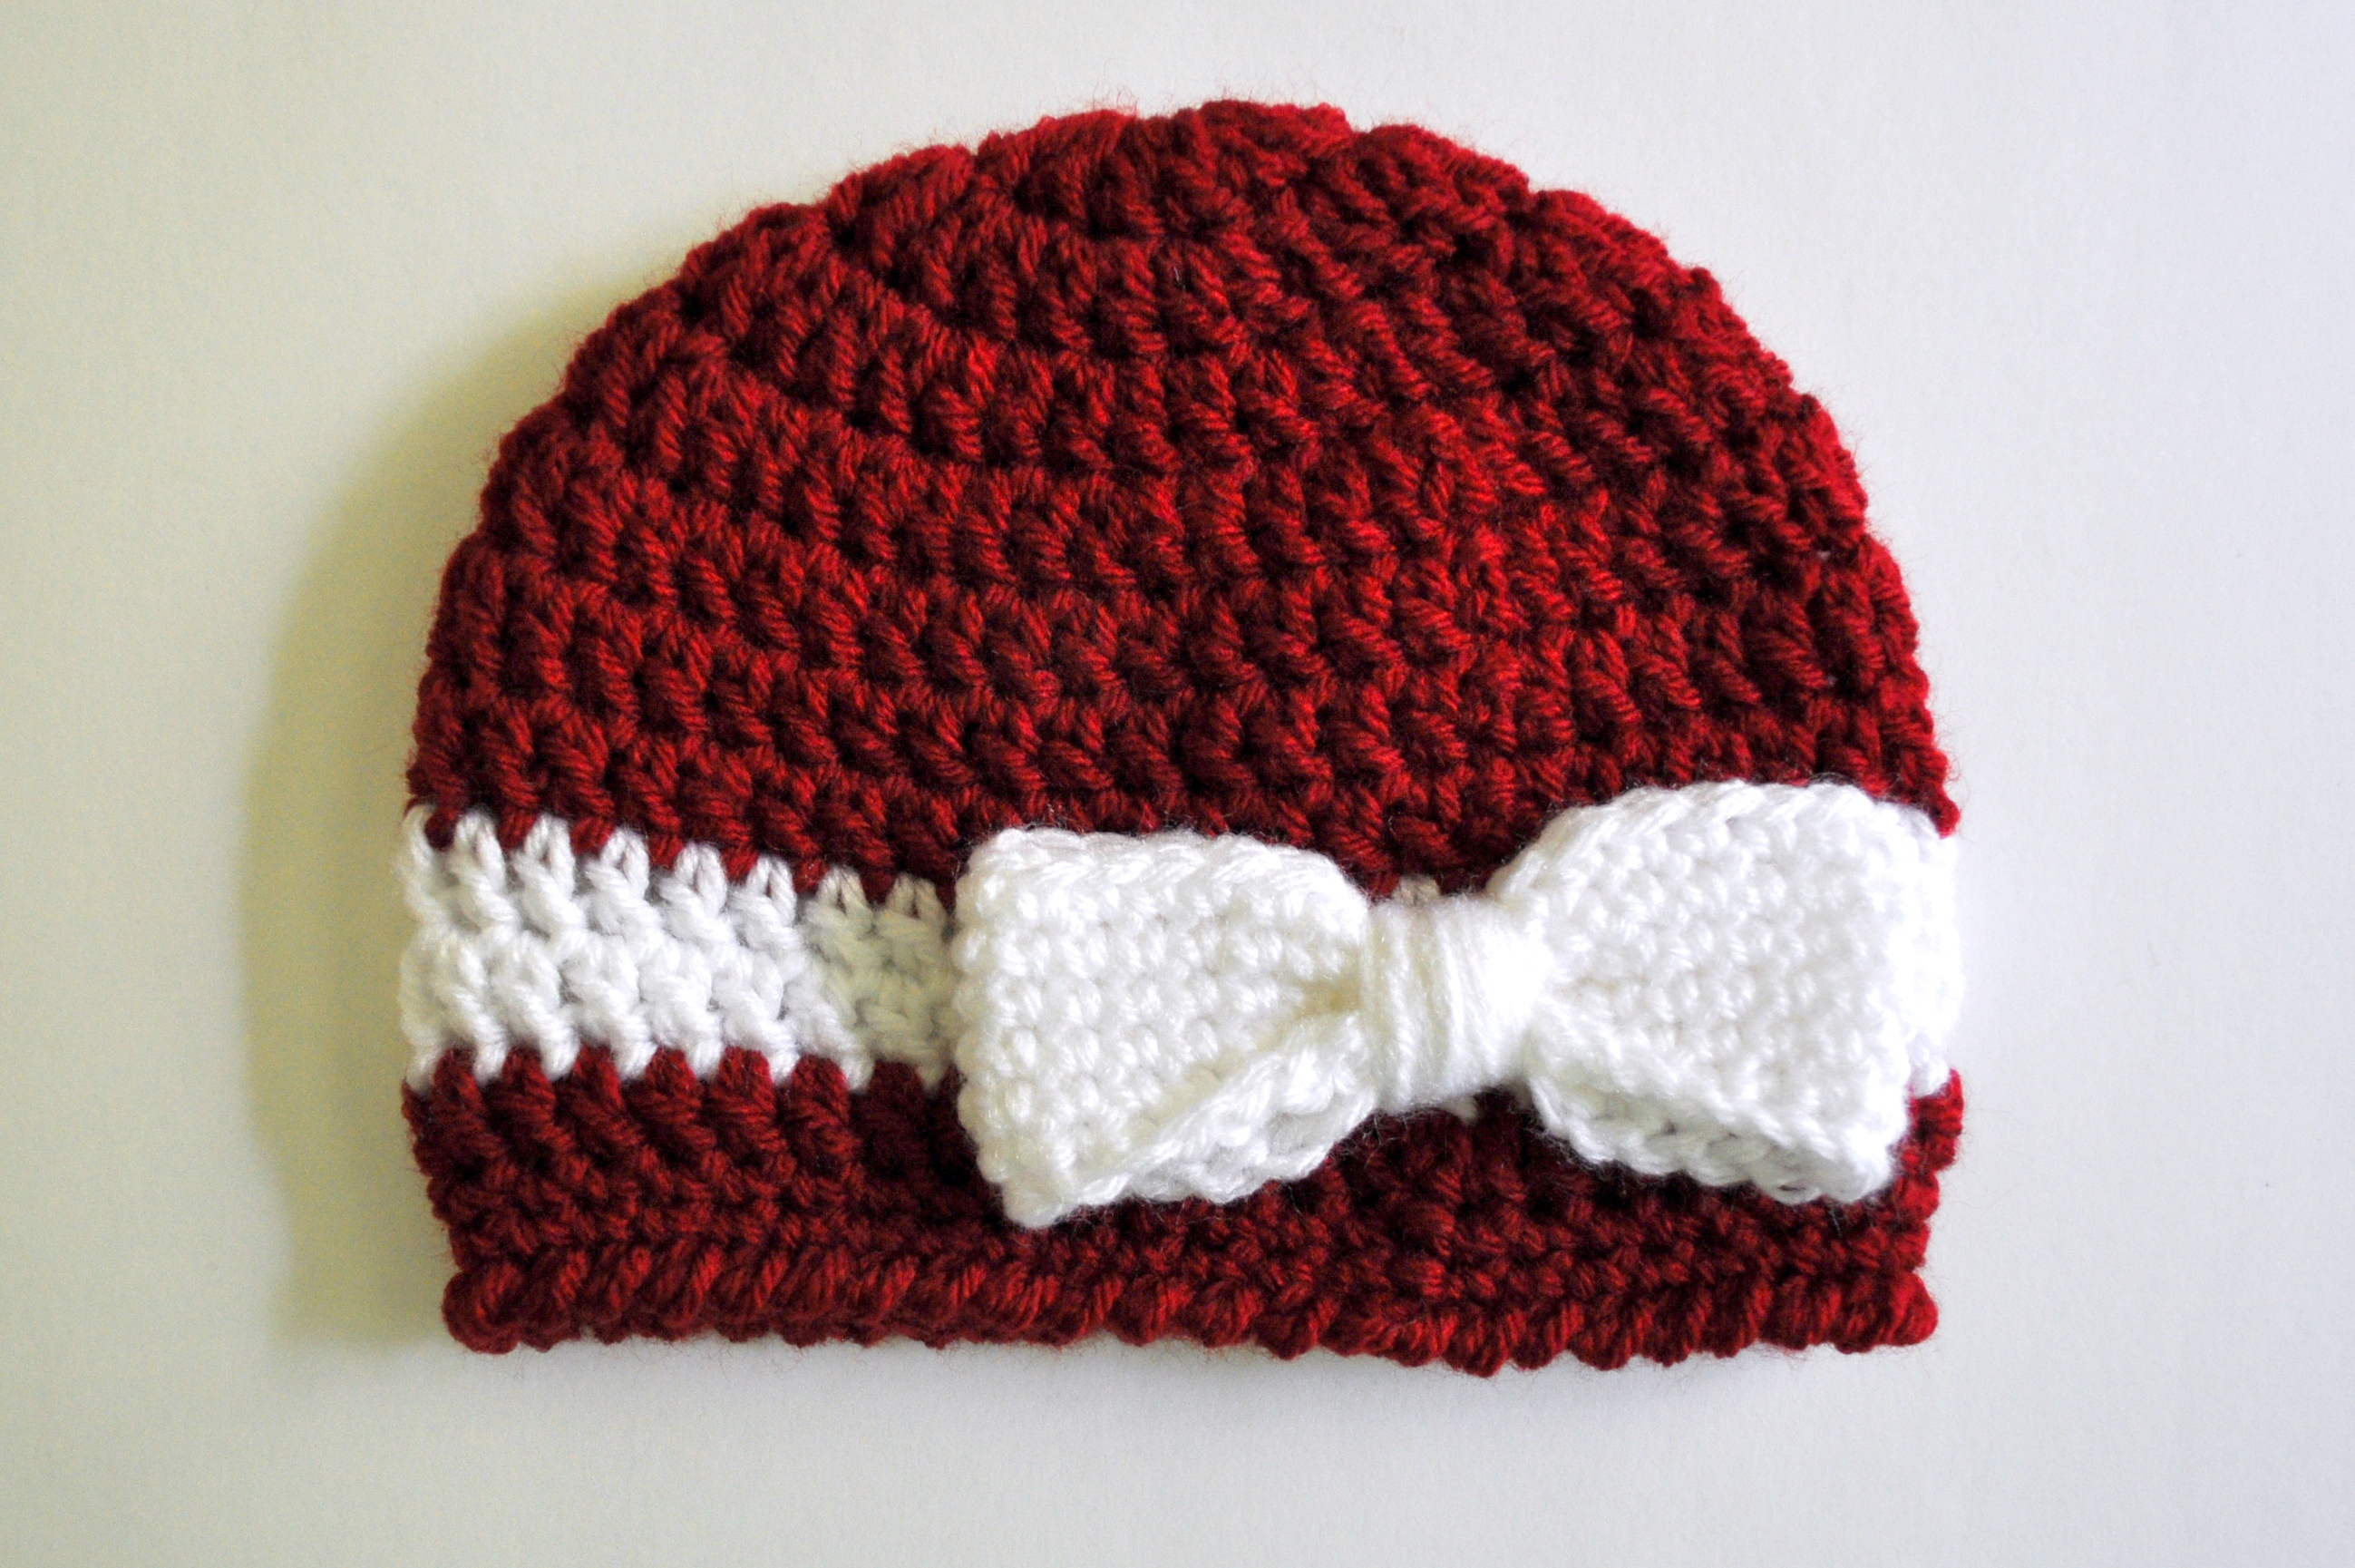 Crochet Patterns Infant Hats : 25 Easy Crochet Bow Patterns Guide Patterns